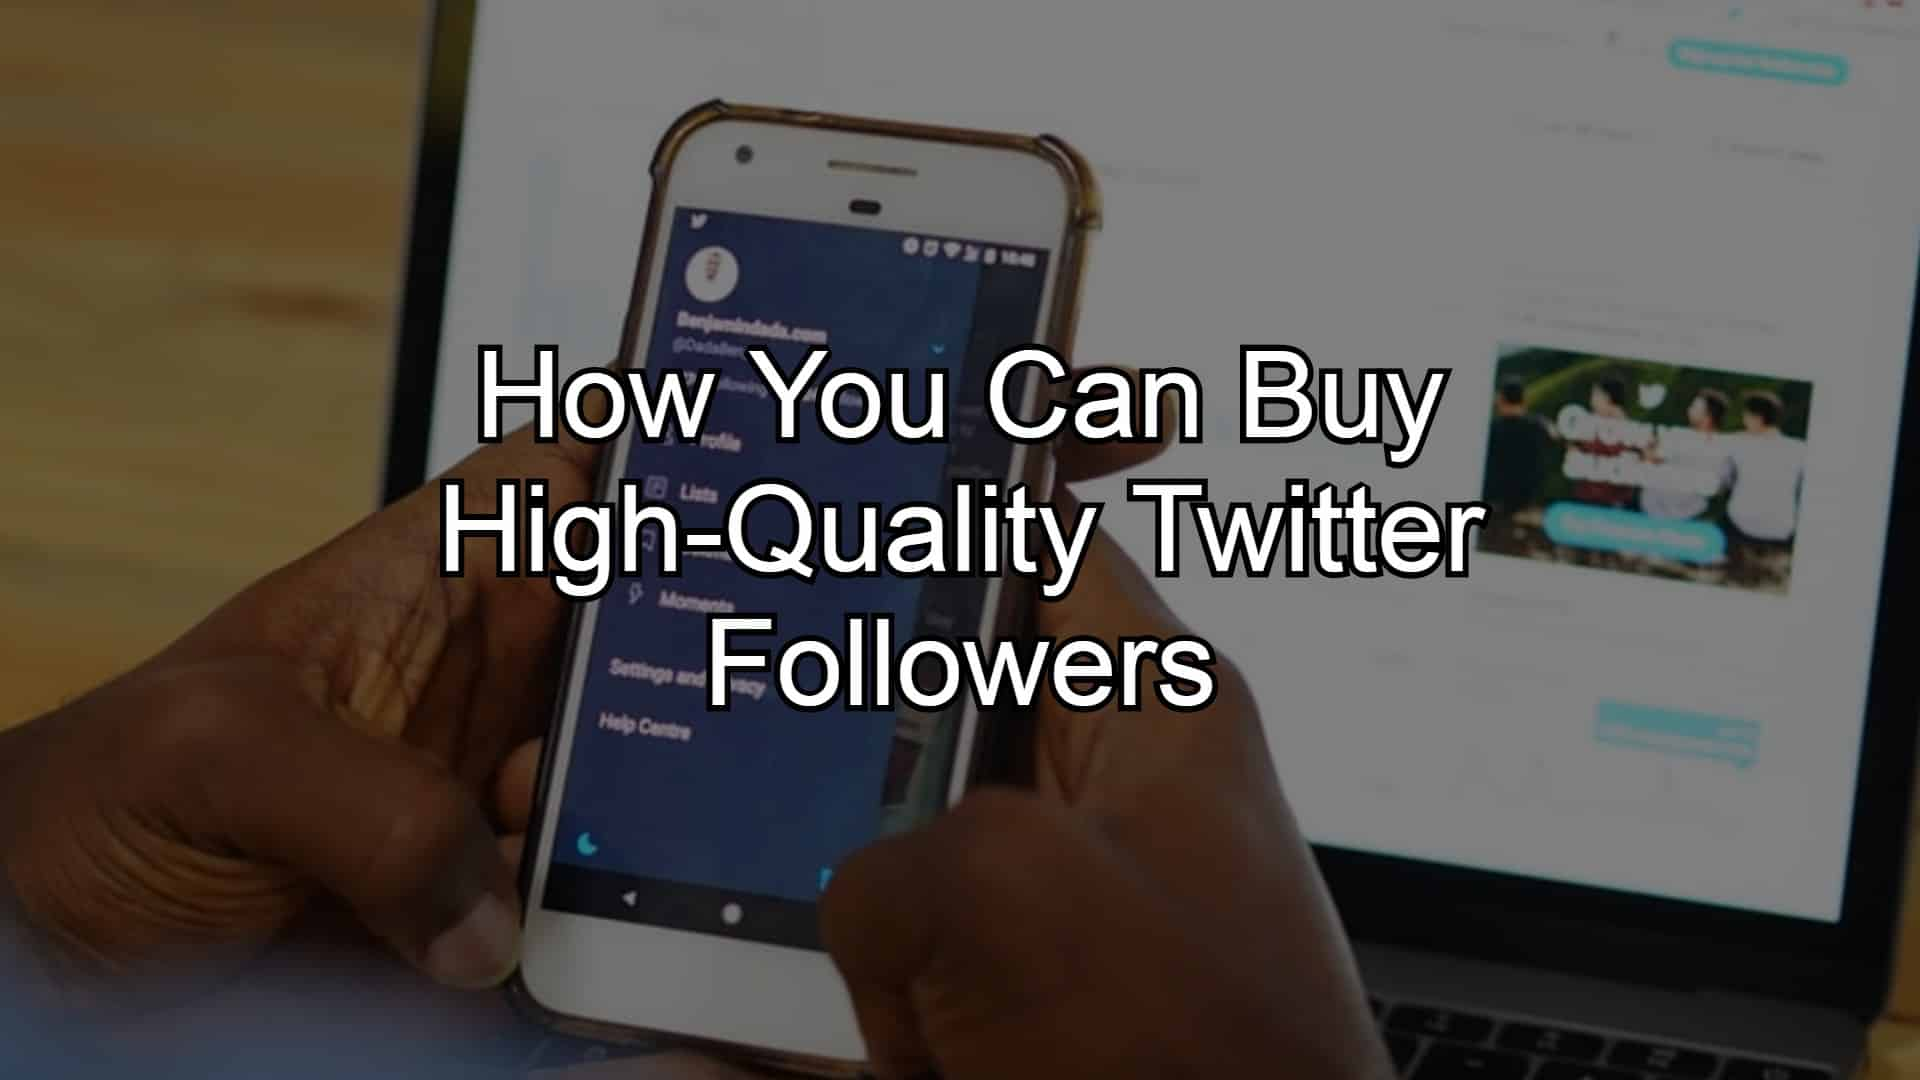 How You Can Buy High-Quality Twitter Followers